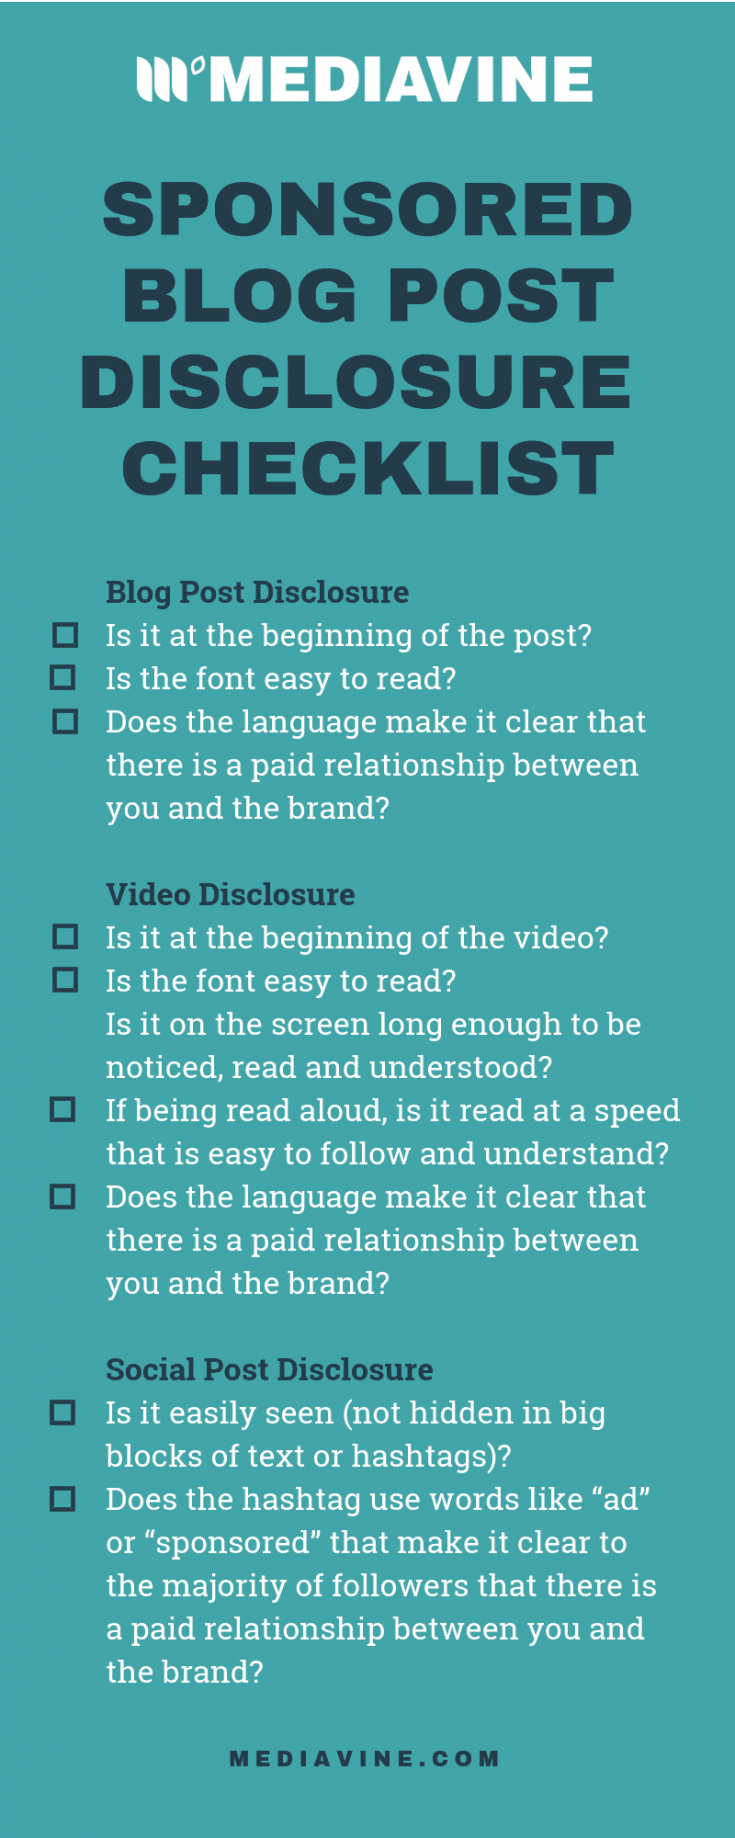 Learn how to disclose your sponsored work. Properly disclosing a relationship with a brand is really important. It establishes trust with readers. Not including a disclosure can break that trust and even result in fines if not done correctly, or at all.